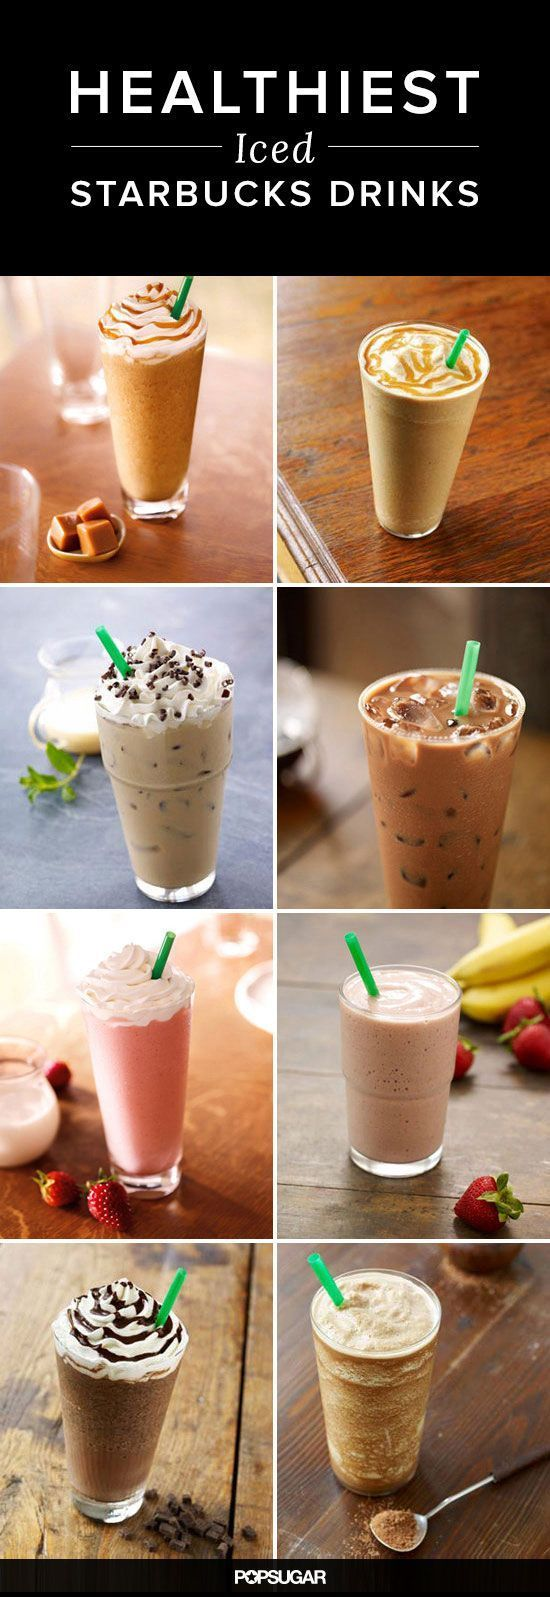 How to save hundreds of calories at Starbucks - choose these drinks: